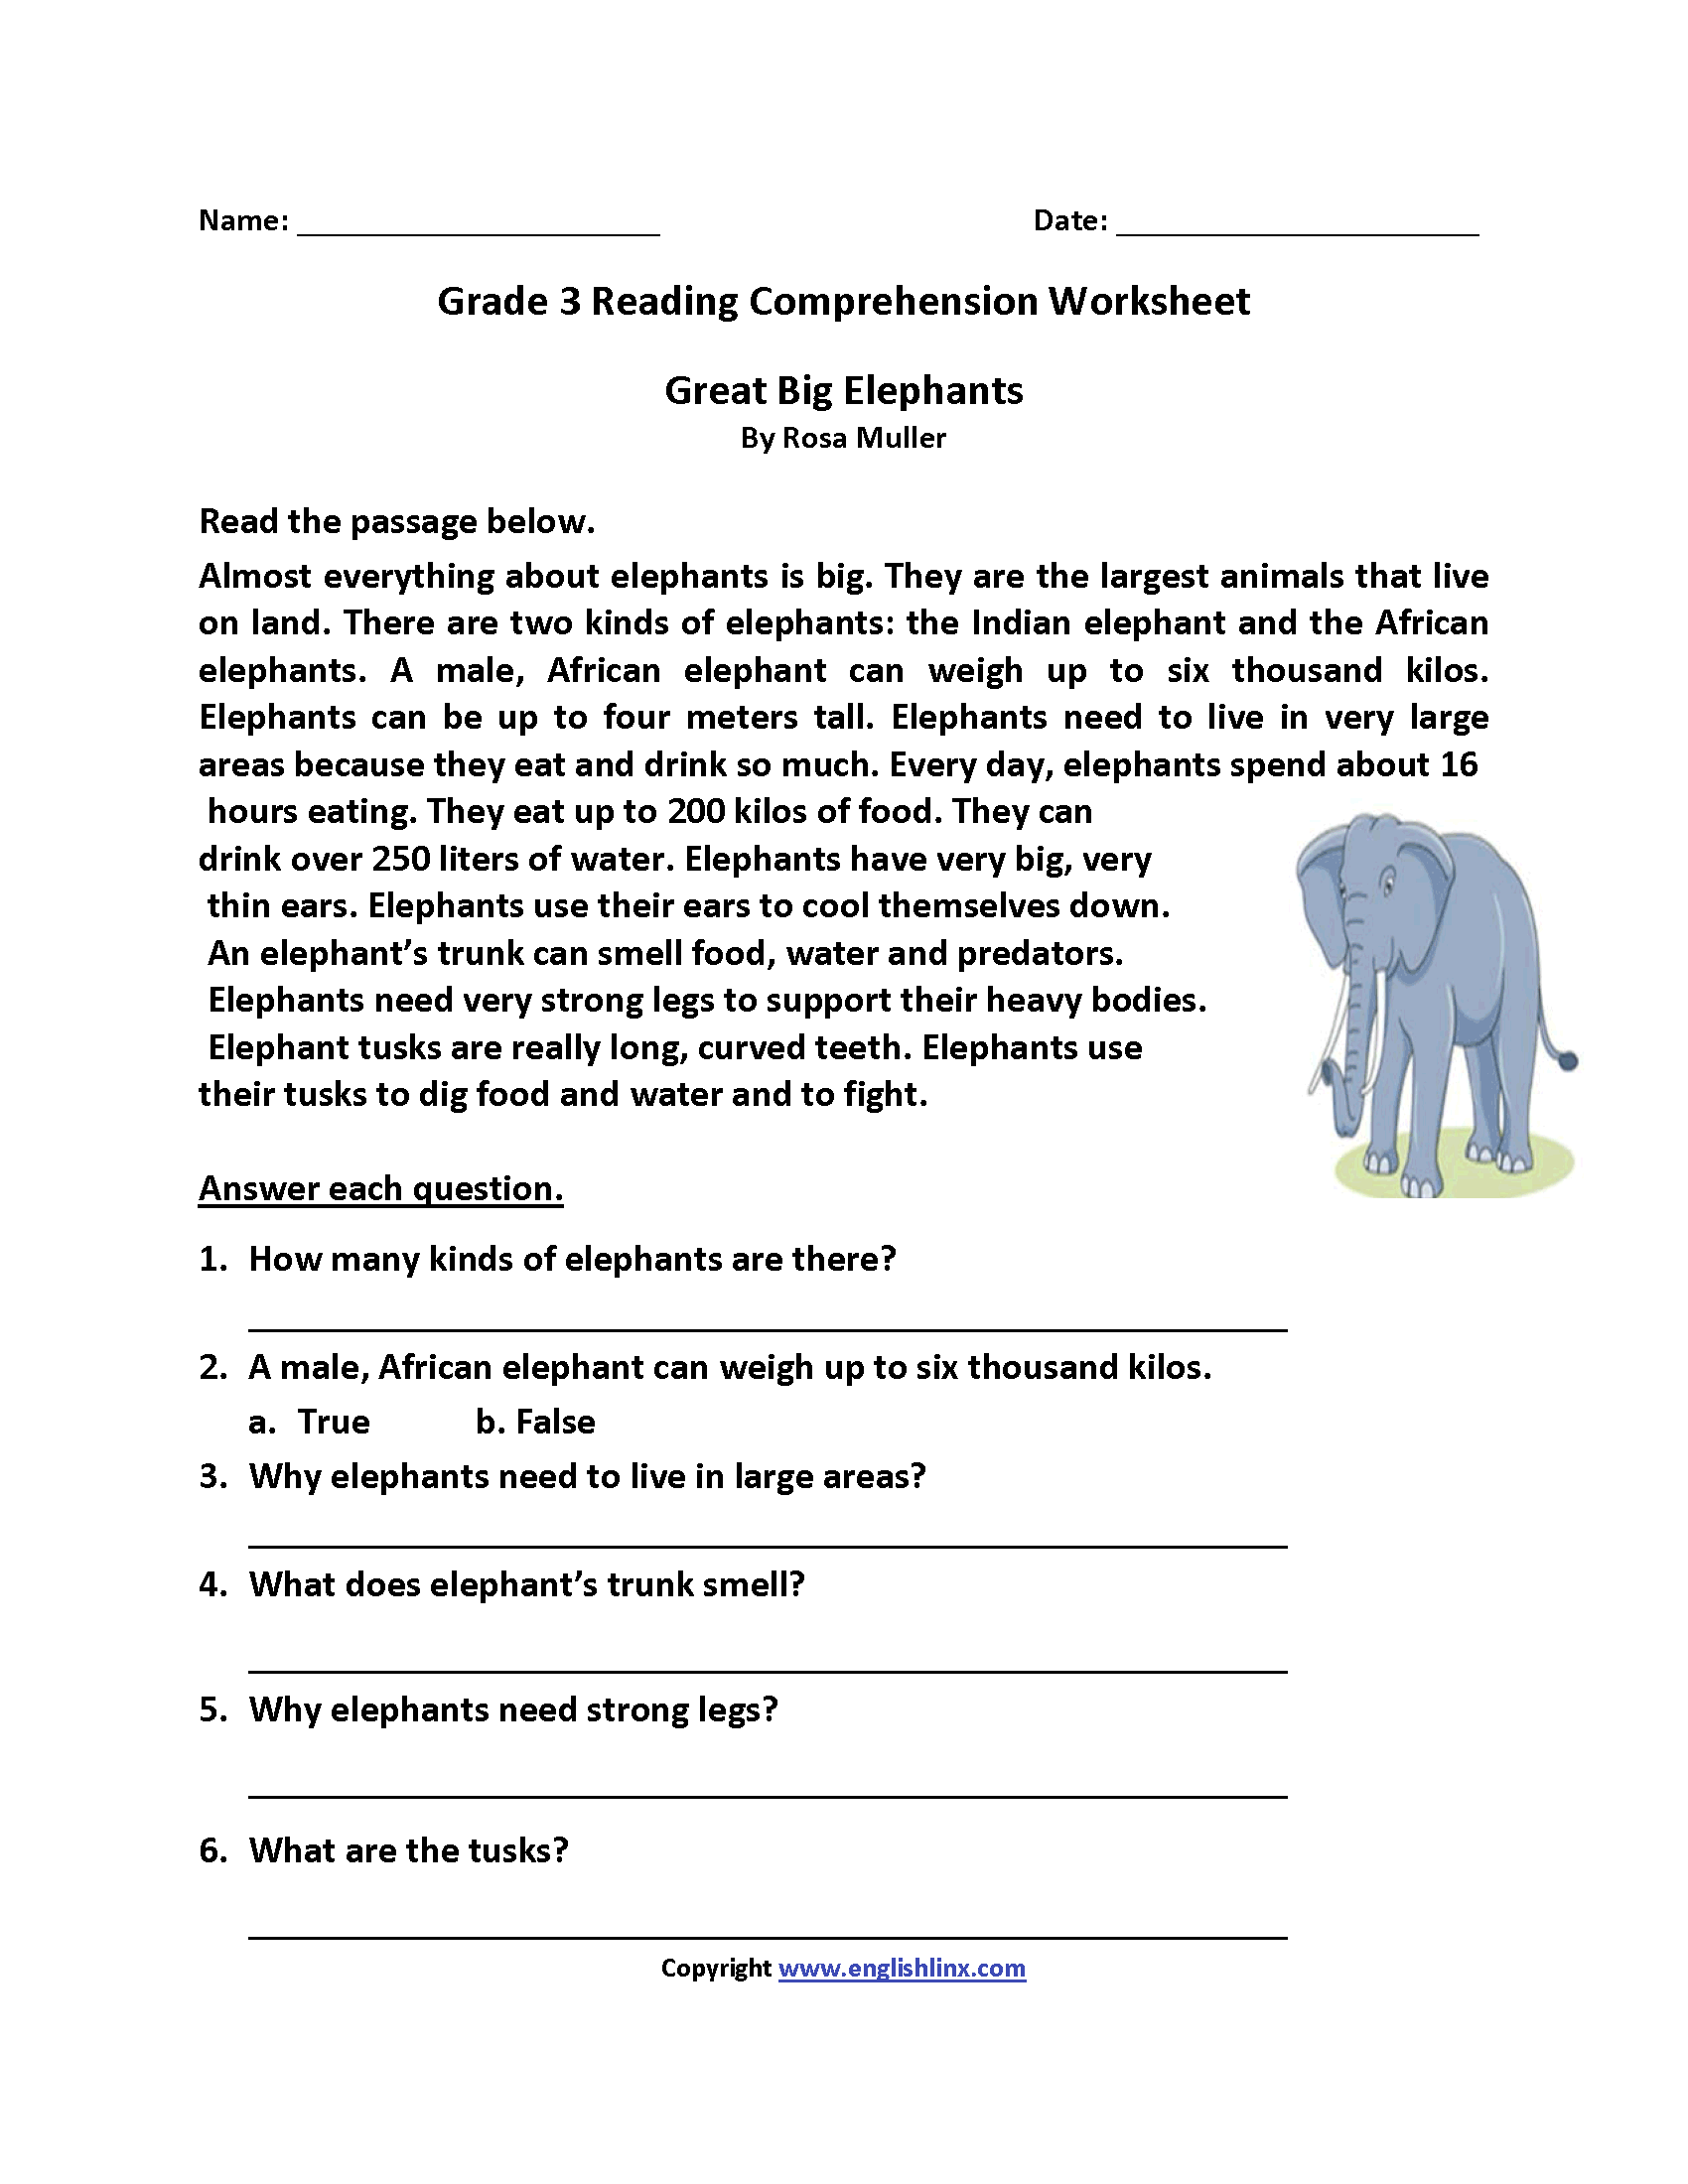 Great Big Elephants Third Grade Reading Worksheets   Third grade reading  worksheets [ 2200 x 1700 Pixel ]